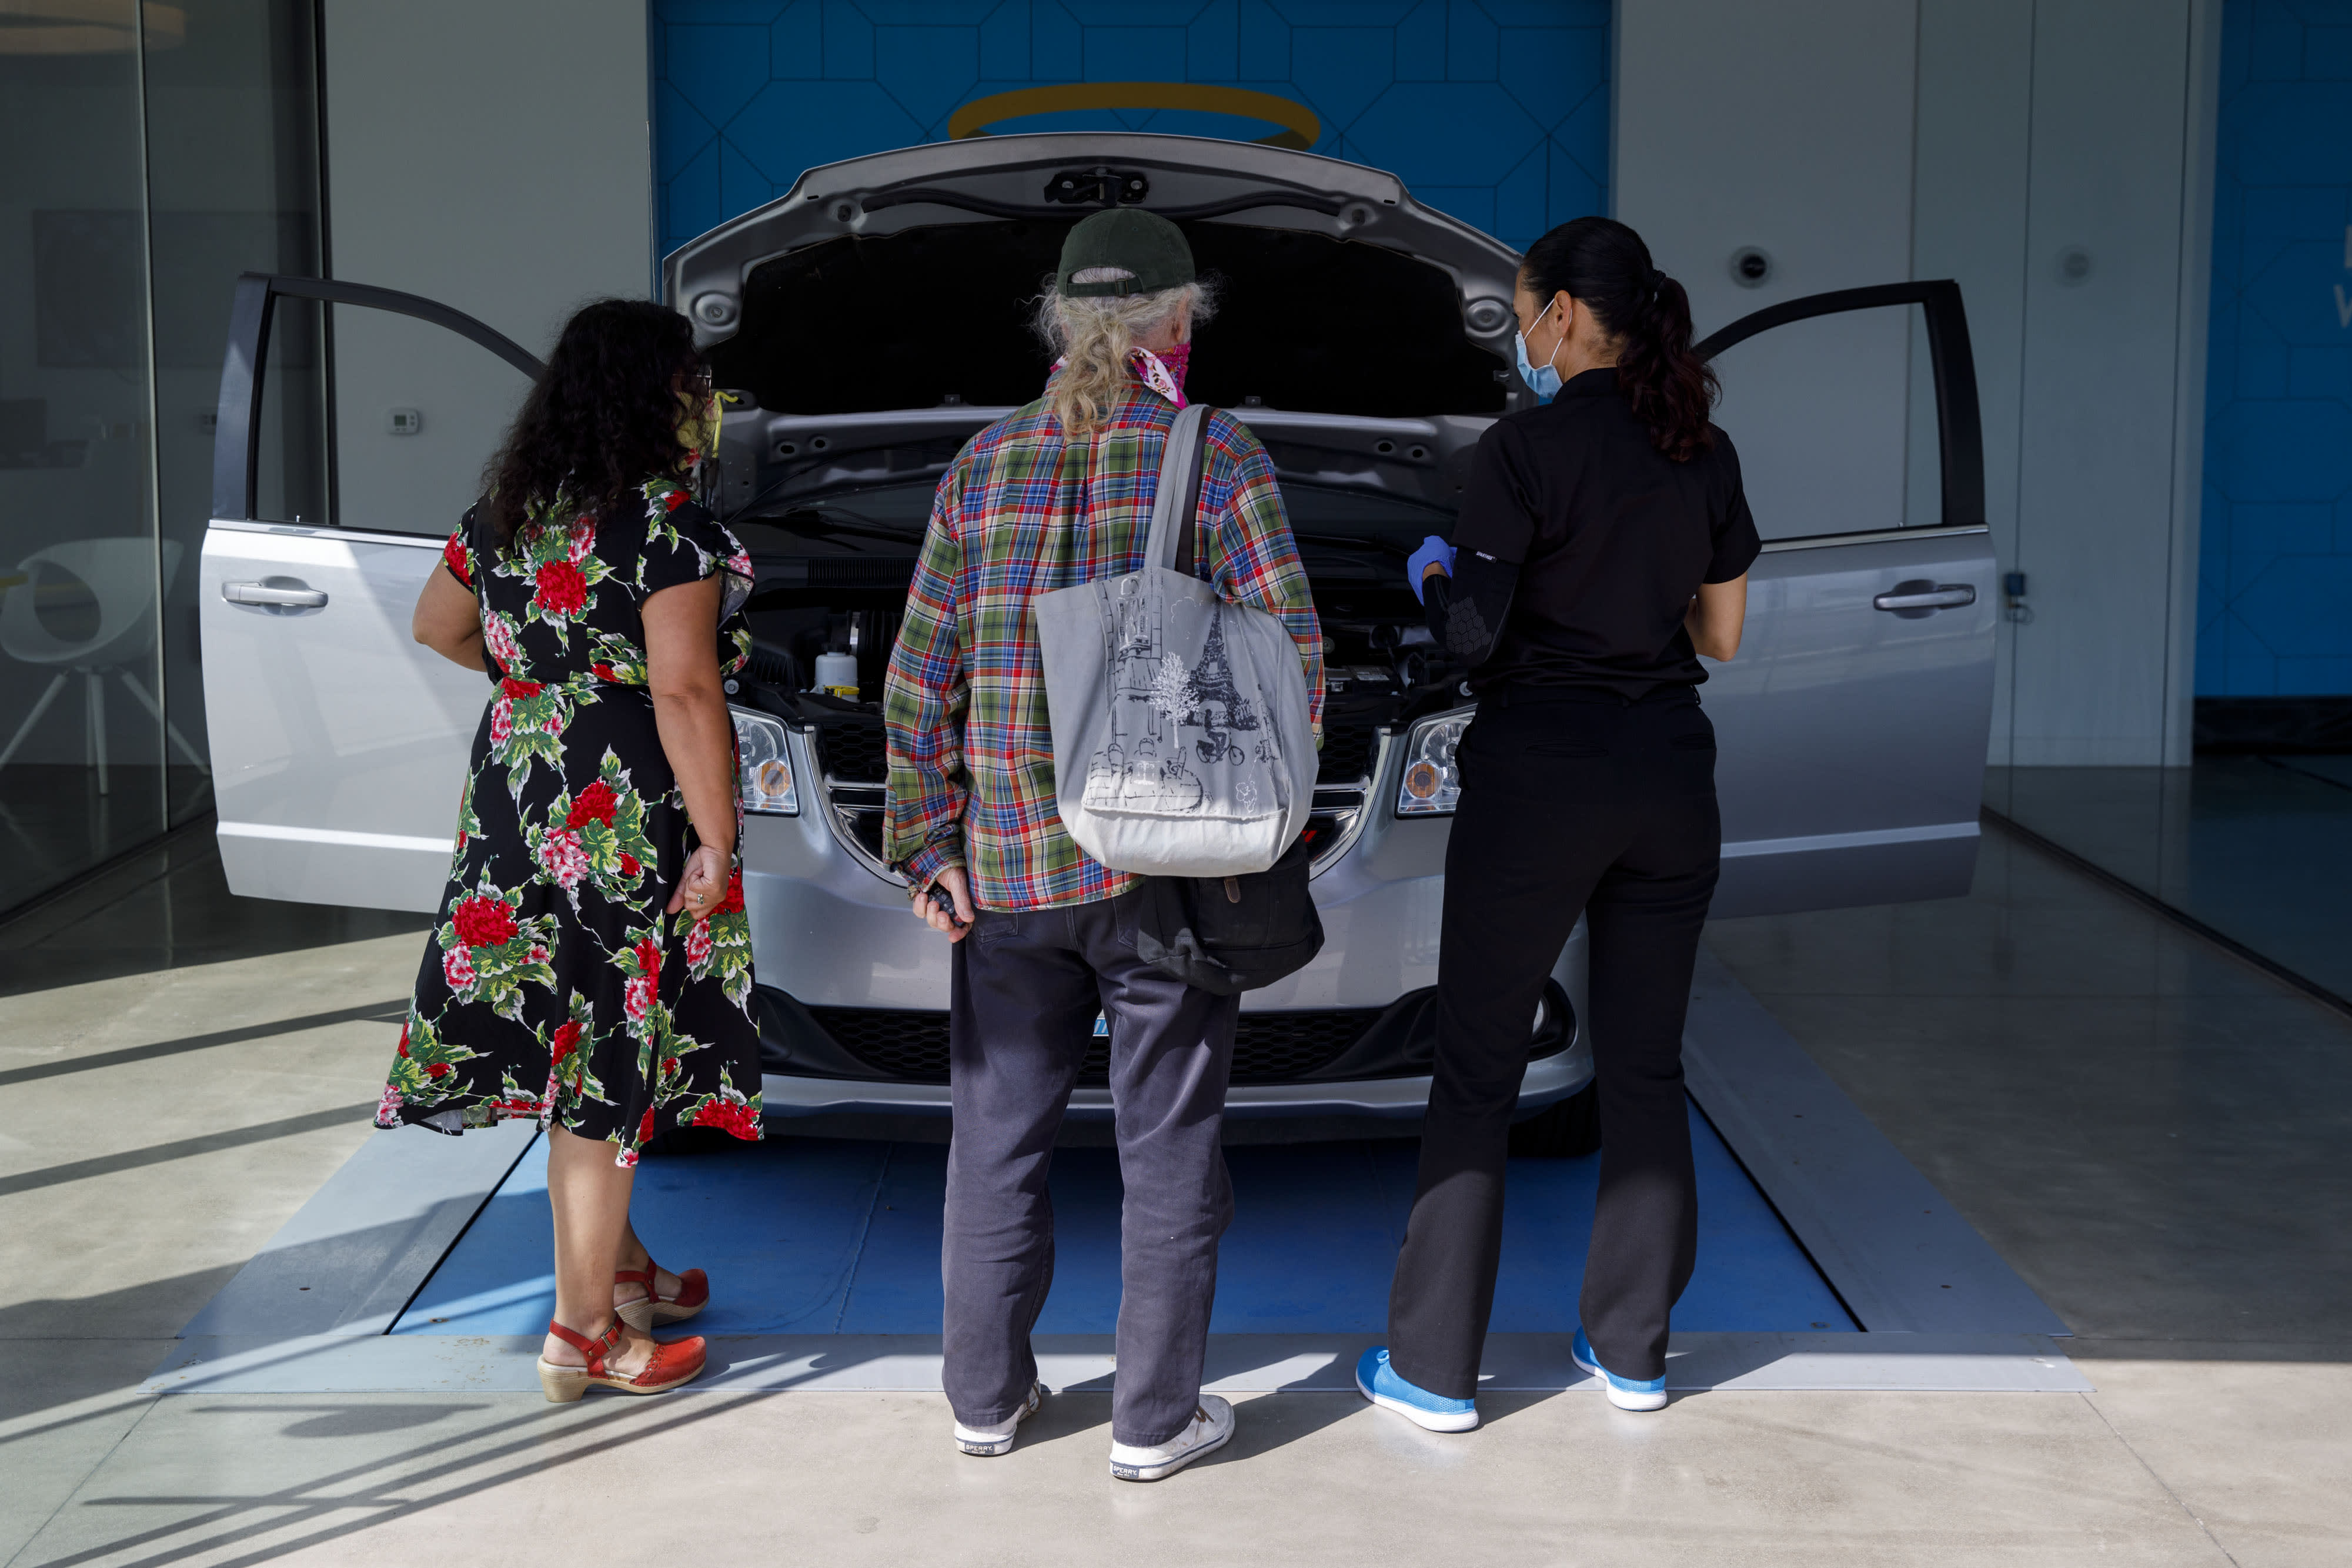 Used car prices to stay high until automakers can fix production issues: Carvana CEO